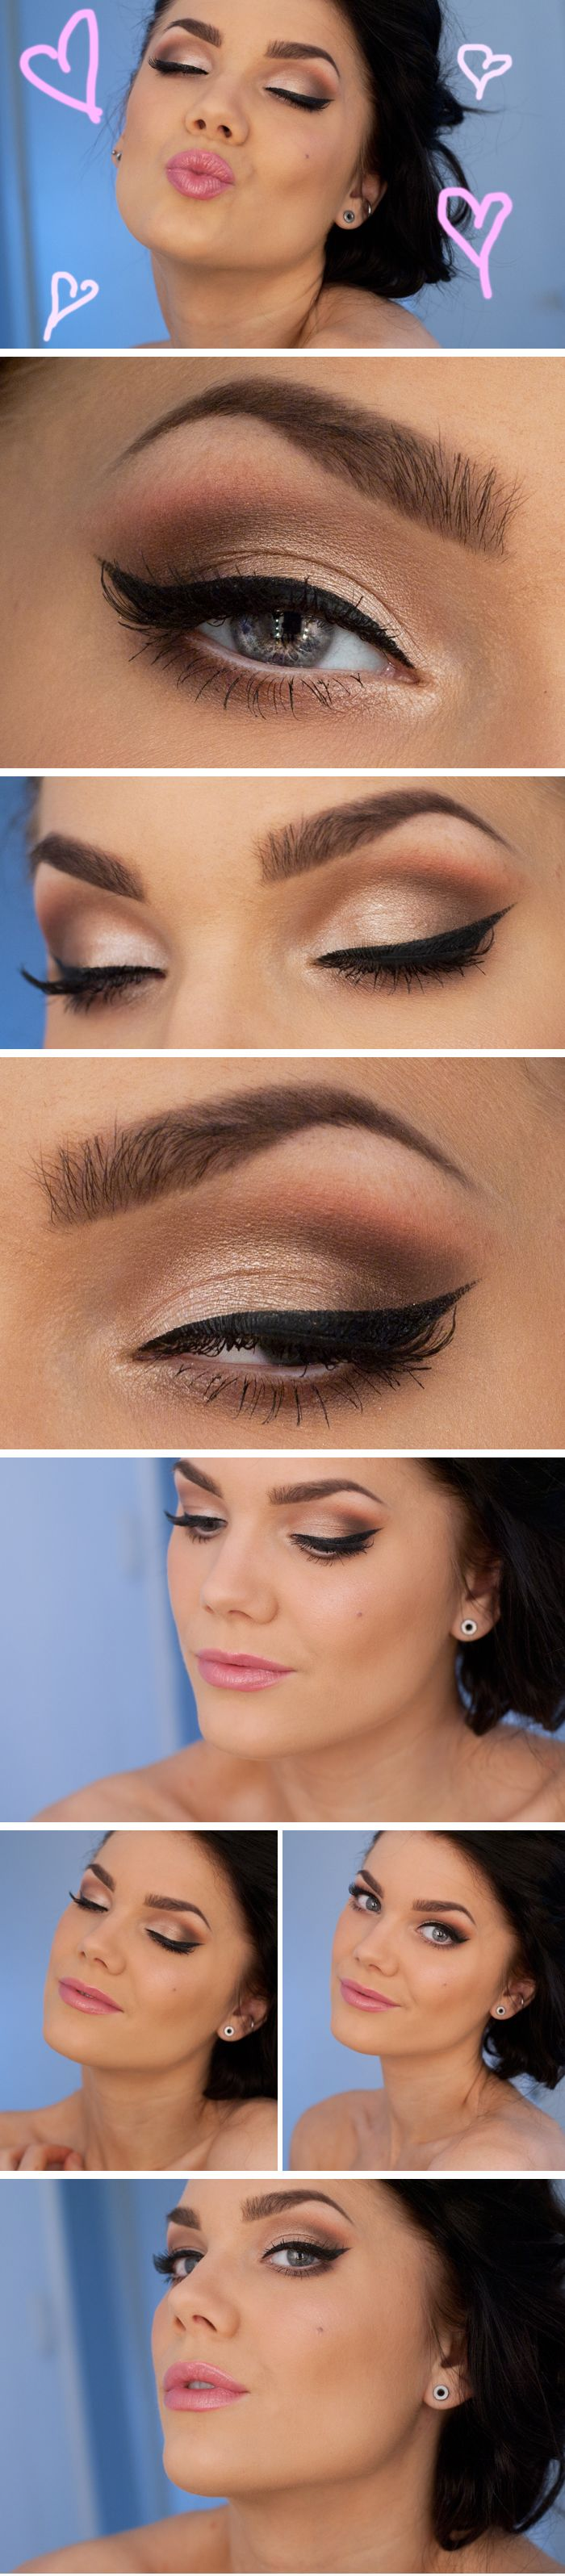 Easy to do with Mary Kay colors. From brow bone to eye lid (top to bottom): White Lilly, Precious pink, chocolate kiss and crystaline. Gel eye liner (Jet Black) and Ultimate mascara in black.  #wedding #makeup. Special occasion. #bride